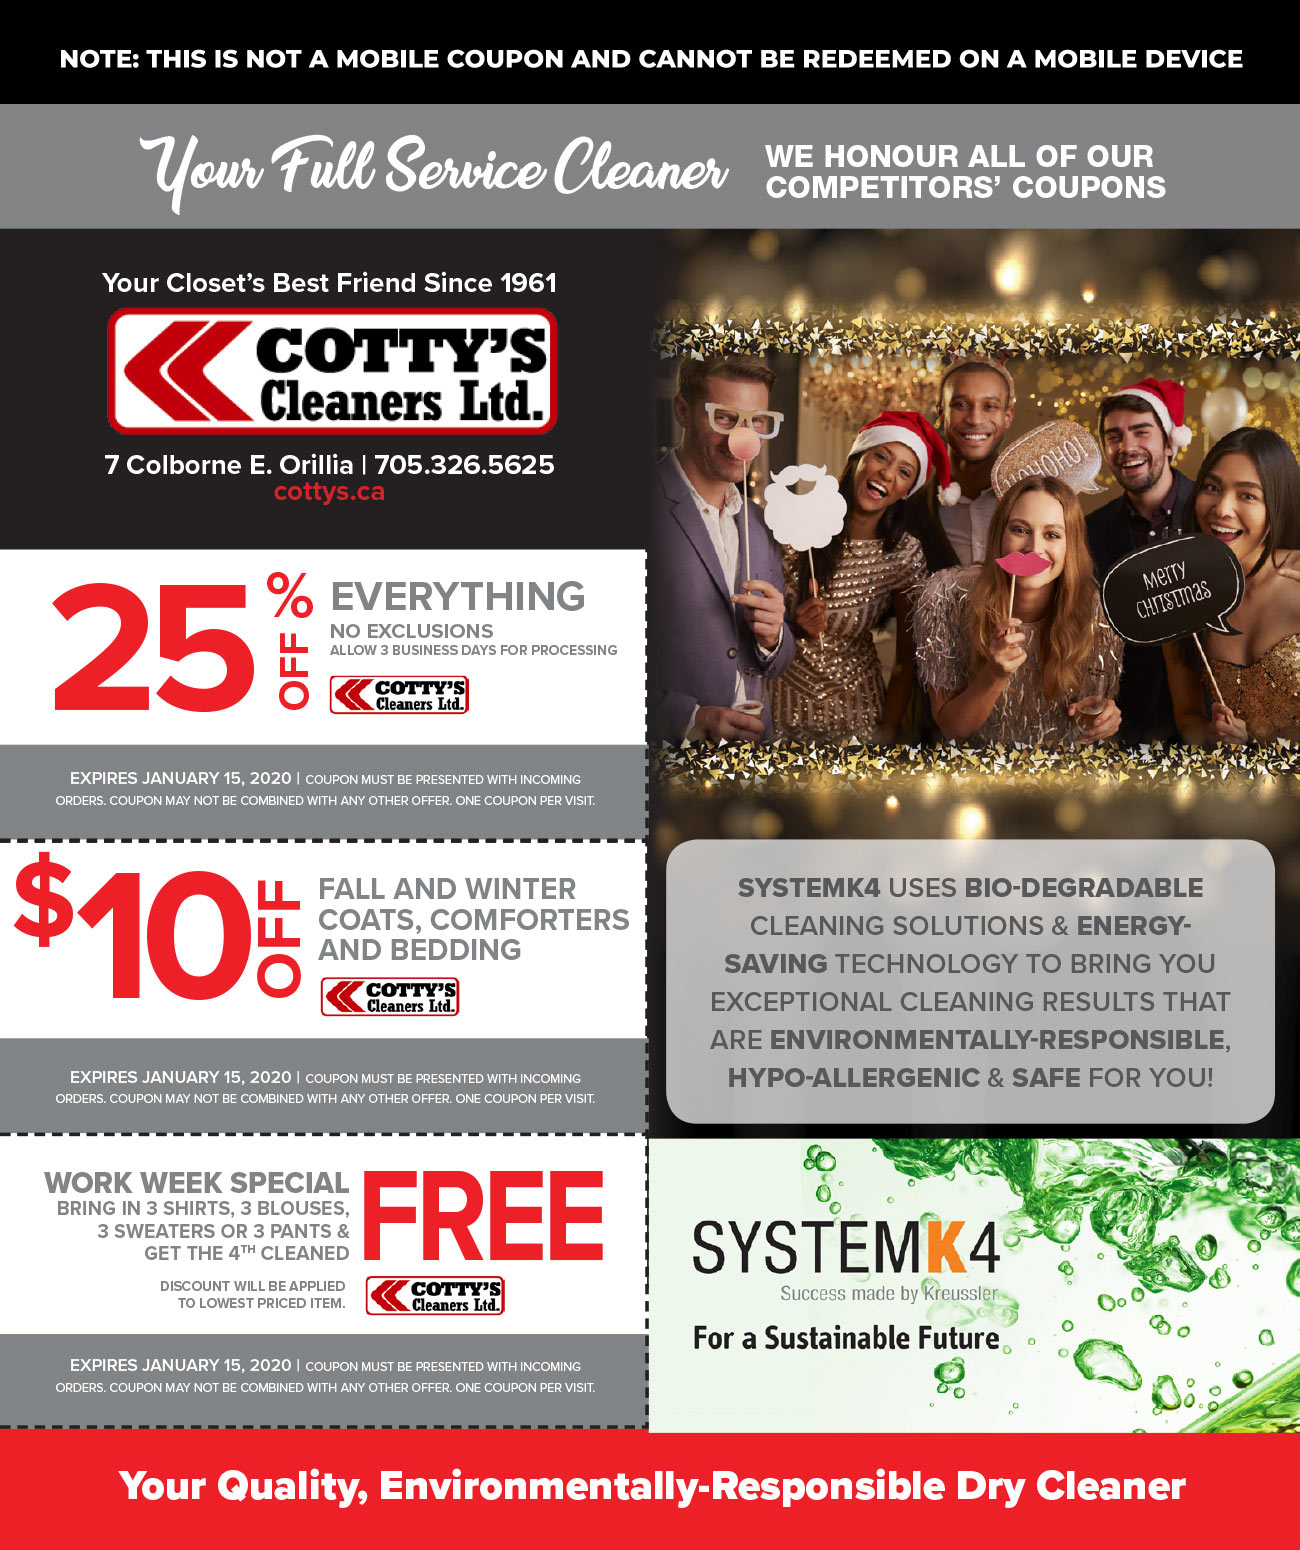 Cotty's Cleaners - Dry Cleaning Coupon